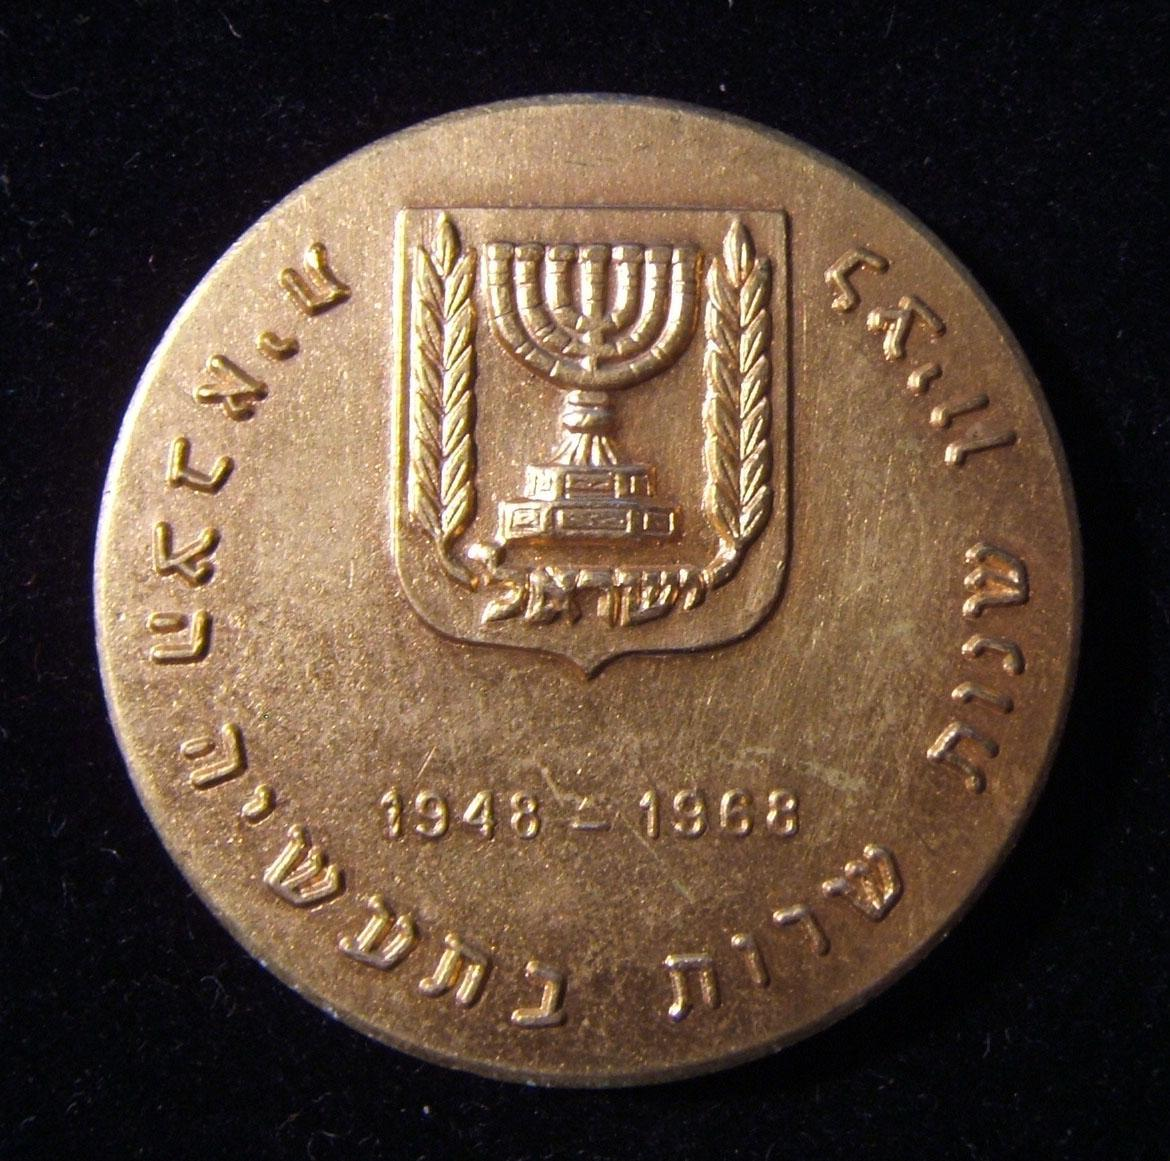 Israeli Military Industries 20 years of service medal of appreciation, 1968